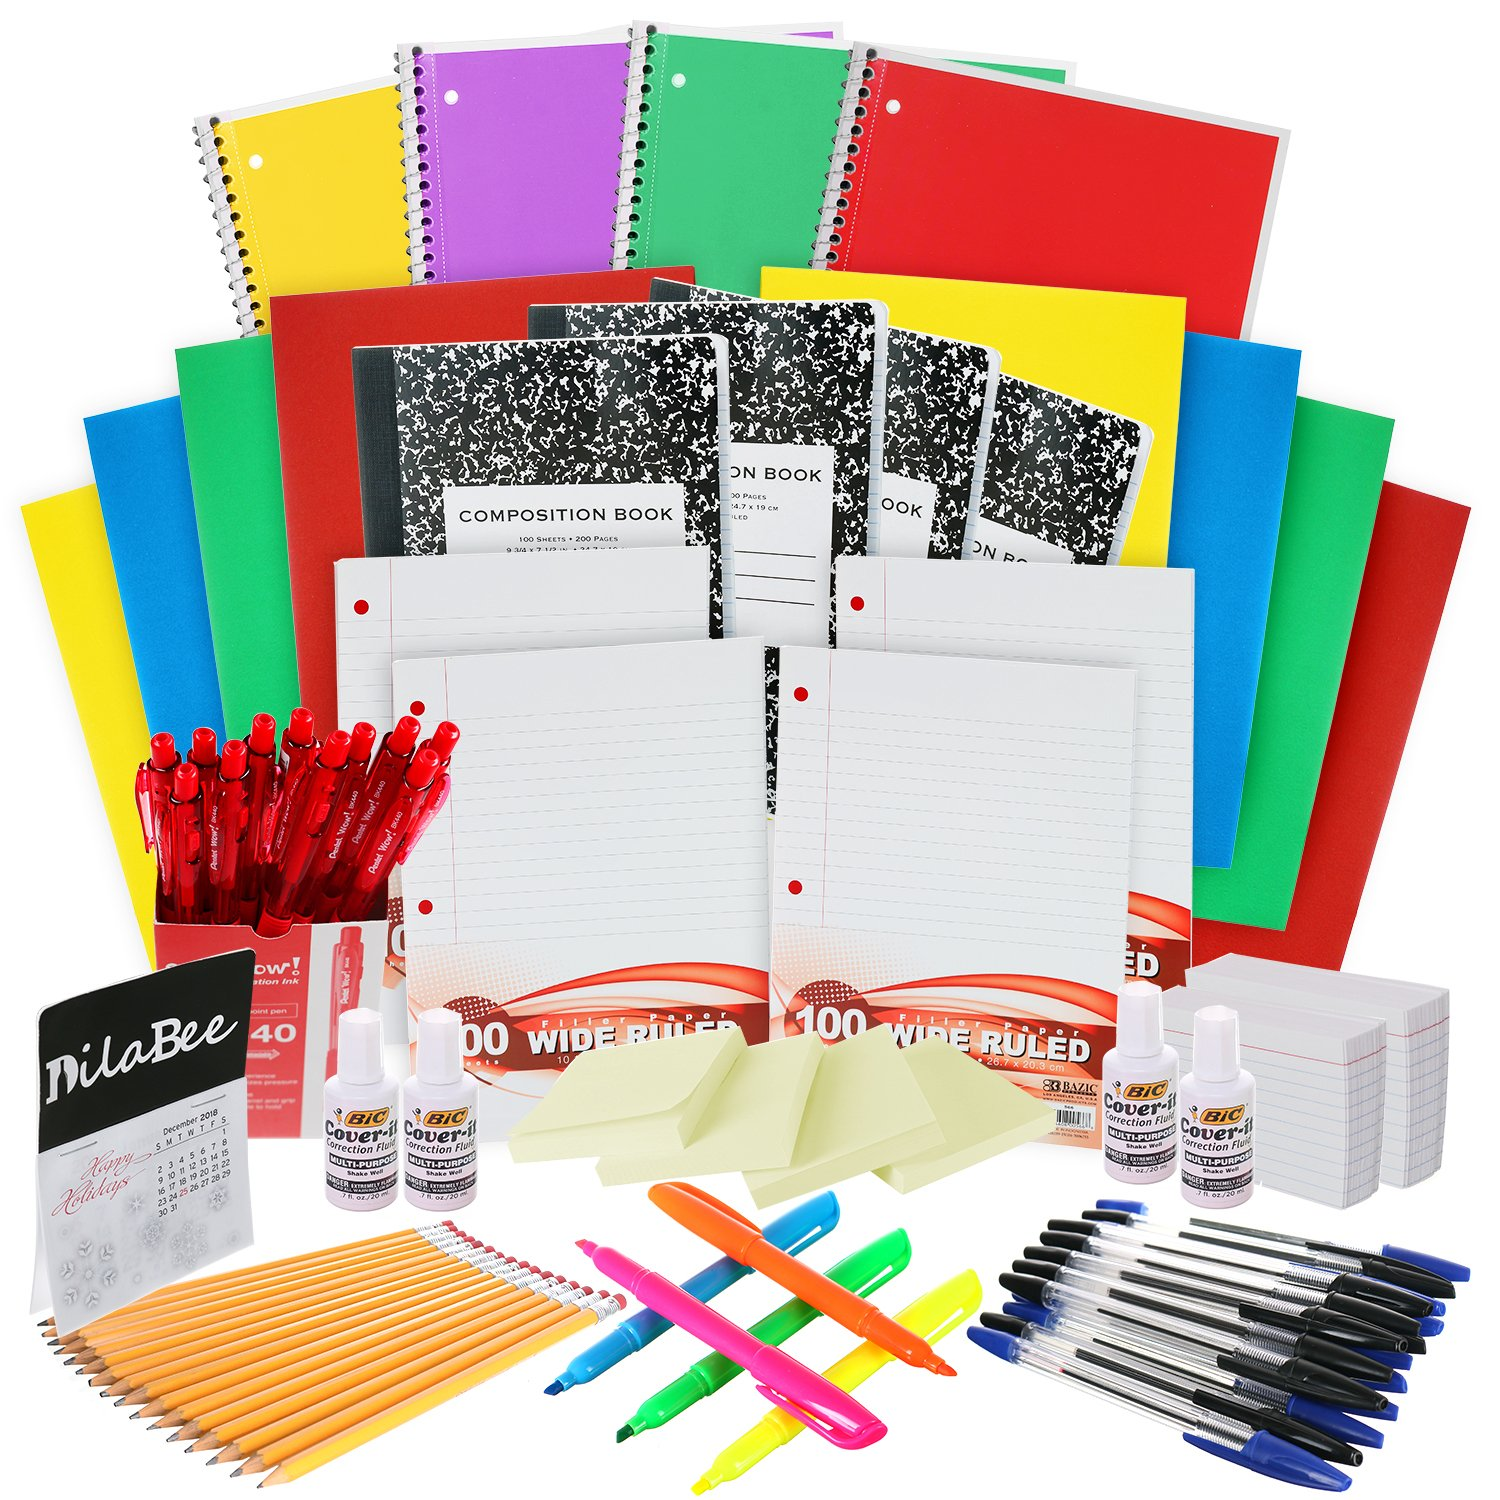 Back to School Supplies Kit: The Complete Classroom Supply Bundle - Bulk Set of 33 School Essentials for All Grades - Wide Ruled Paper, Pens, Pencils, Notebooks & More Stuff